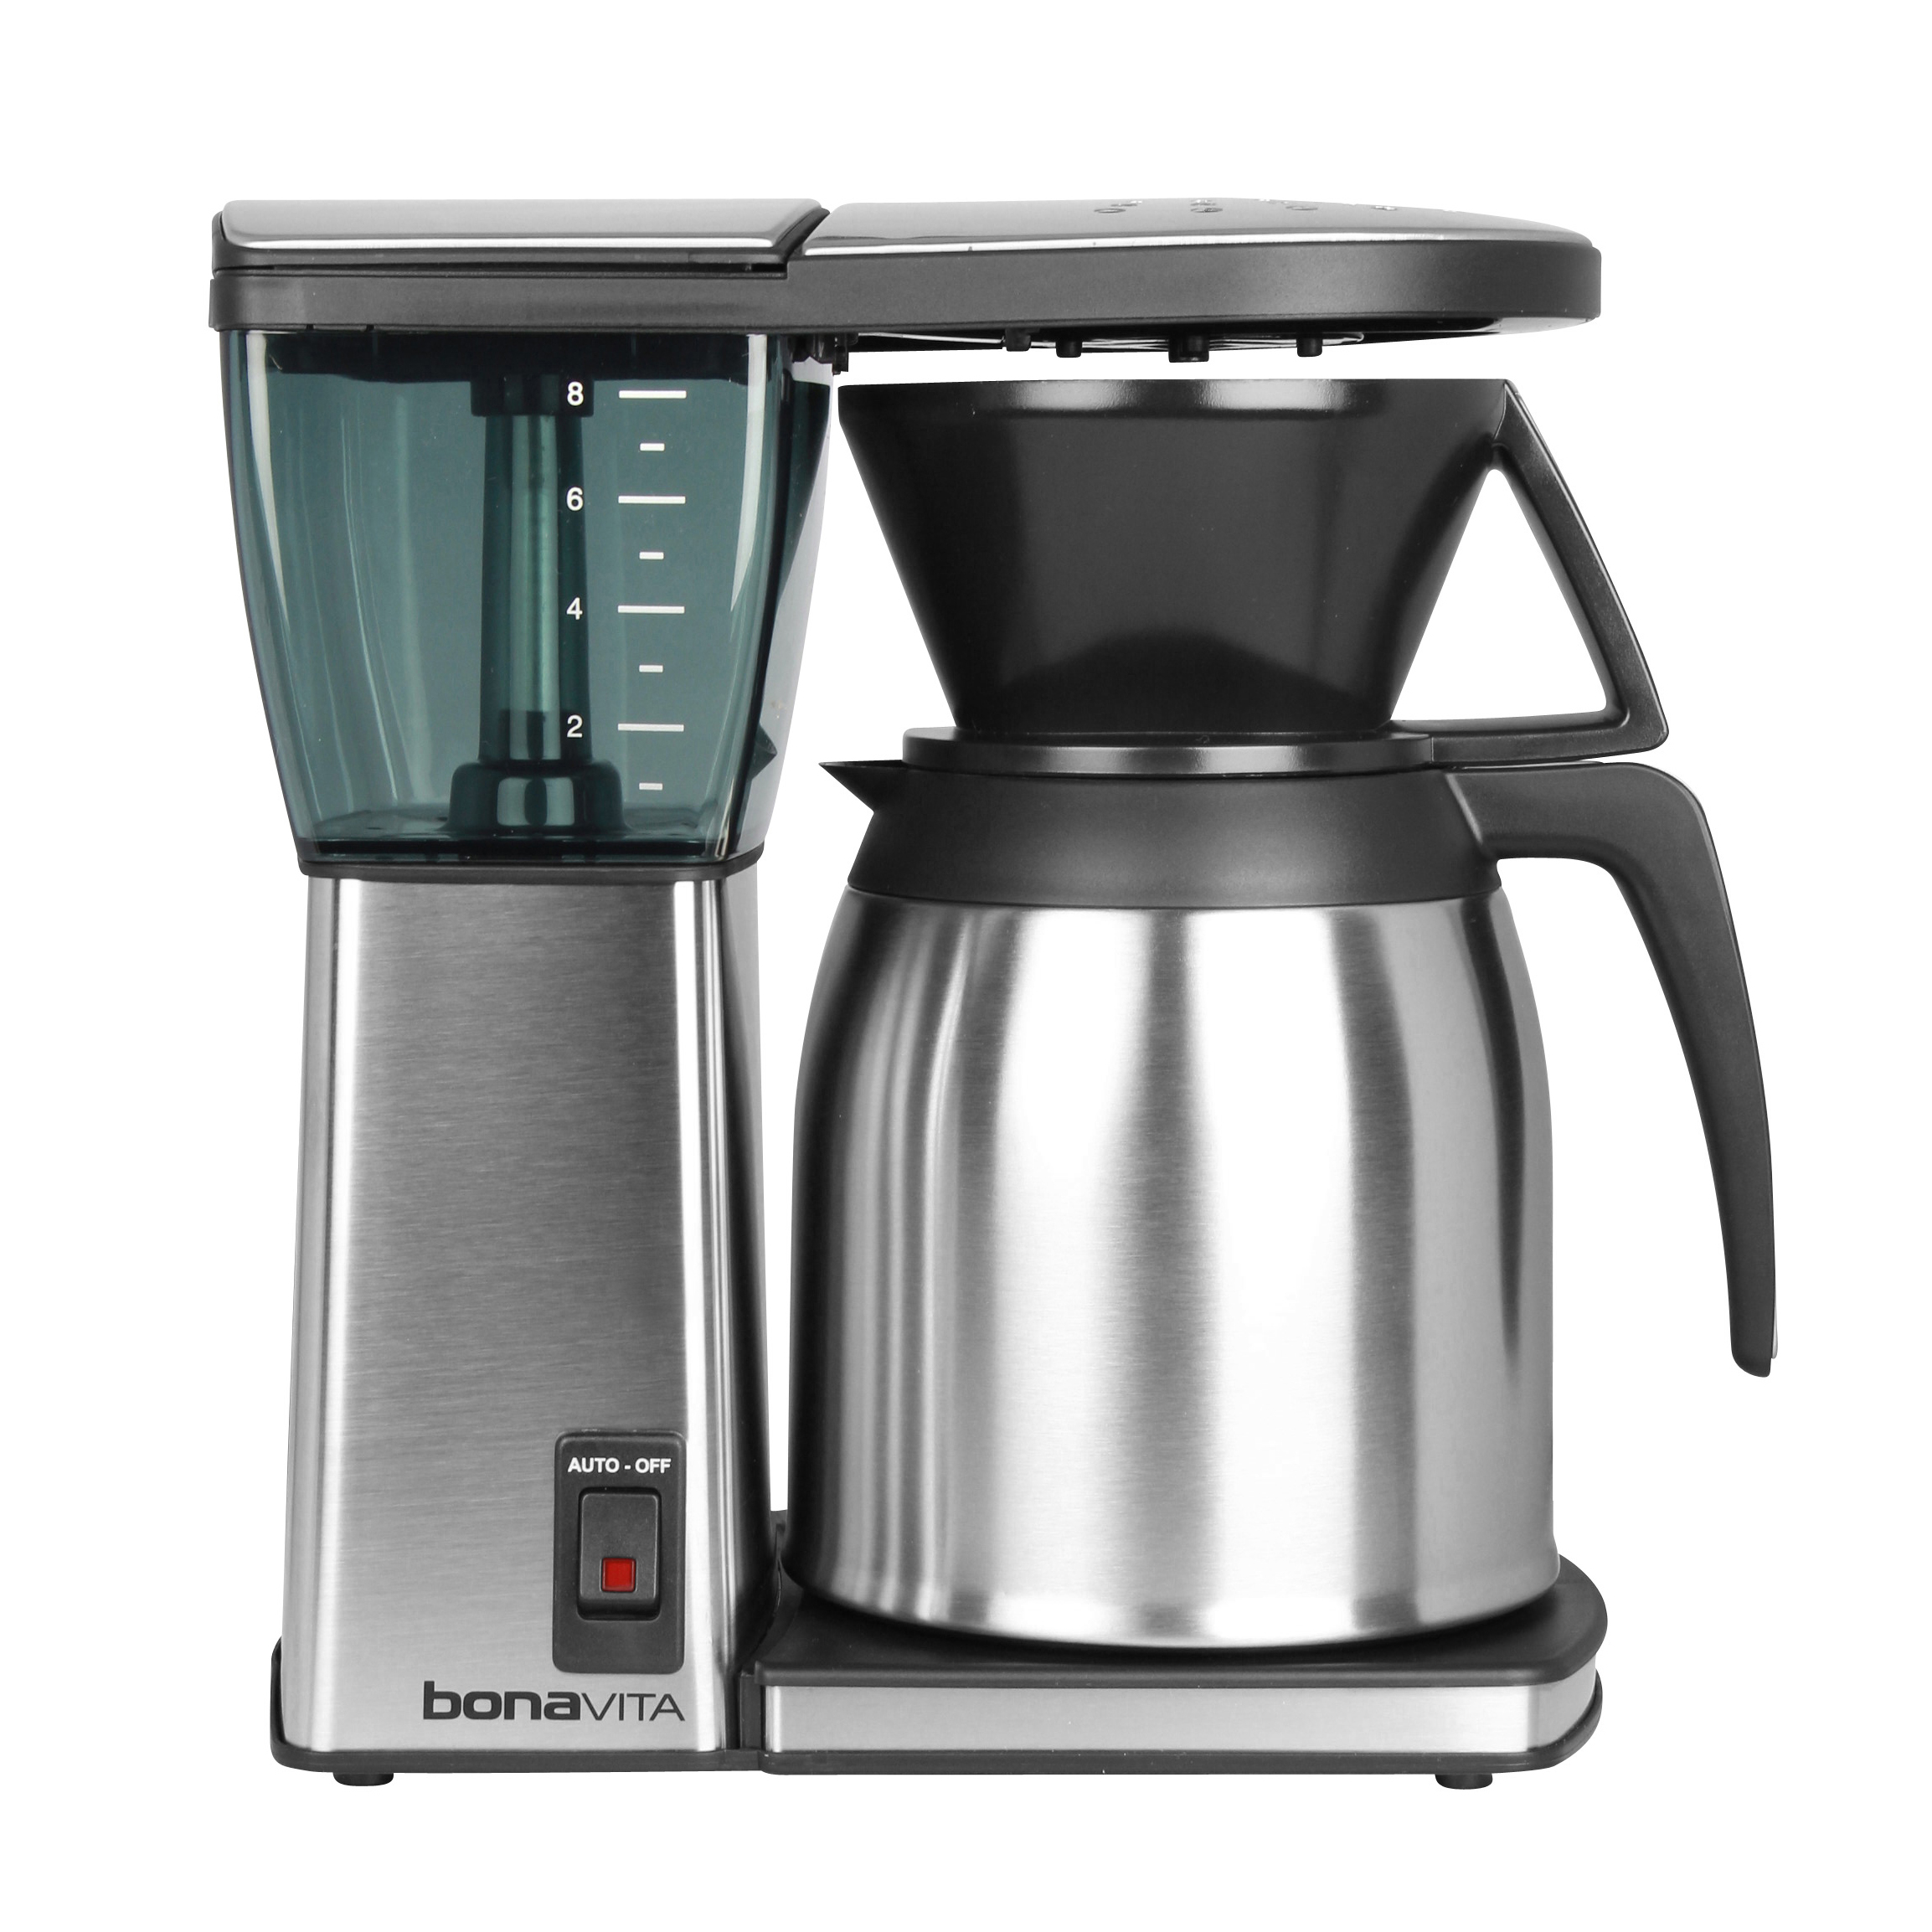 the best choice of modern coffee maker  homesfeed - adorable nice modern metal made wonderful idea bonavita thermal coffee makerwith nice large design with